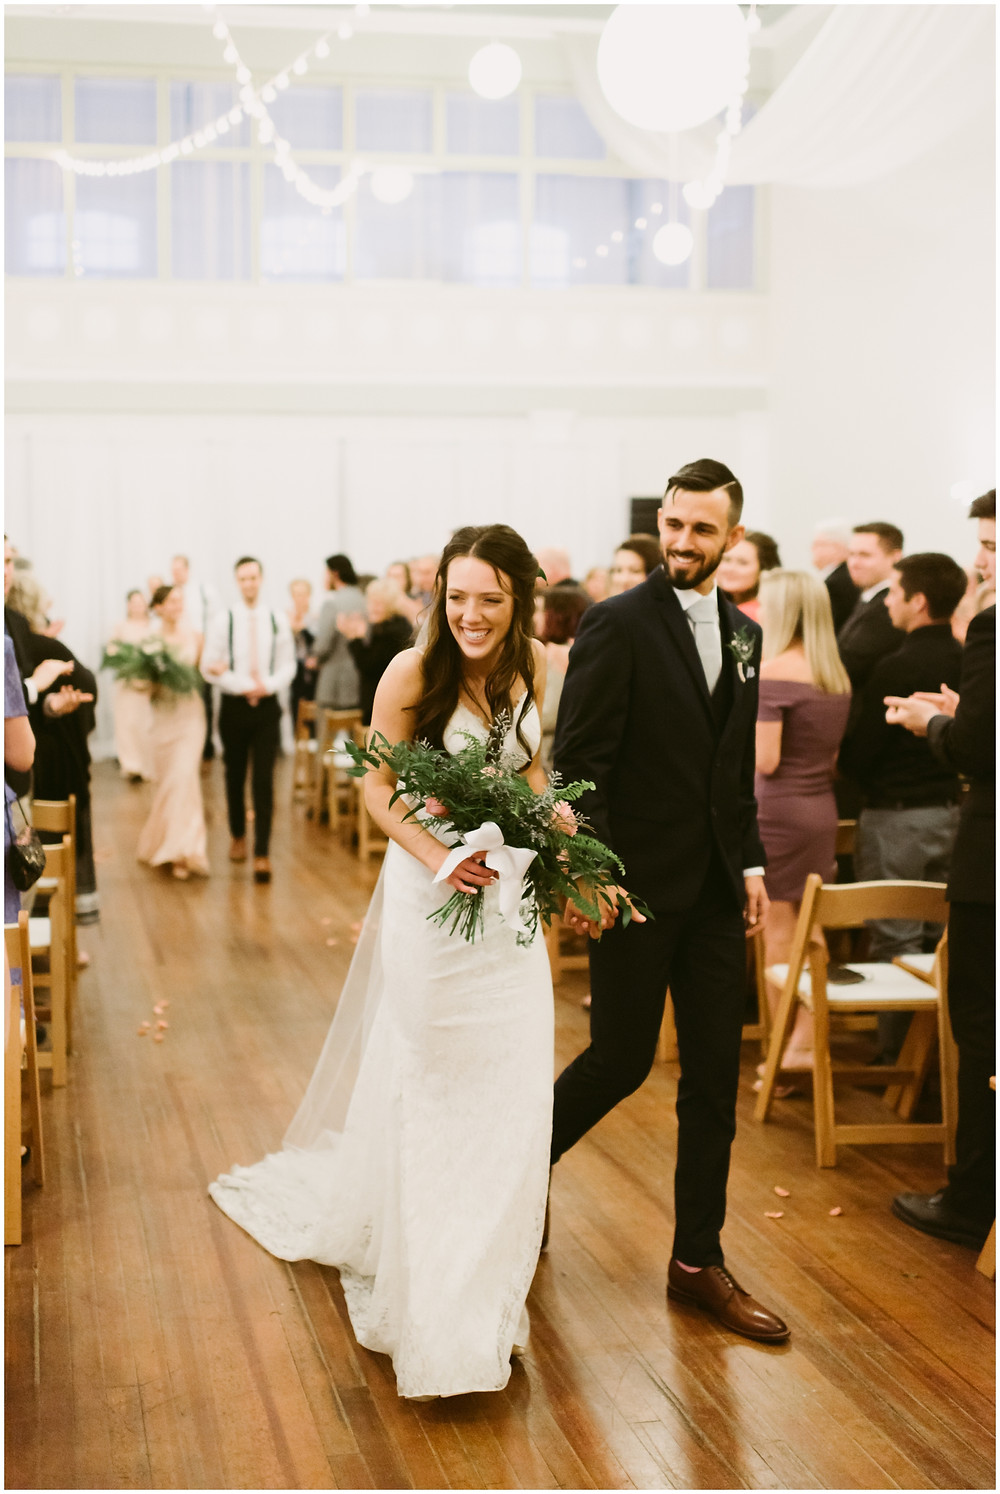 Spring wedding at the Takk House in upstate NY by Mountainaire Gatherings